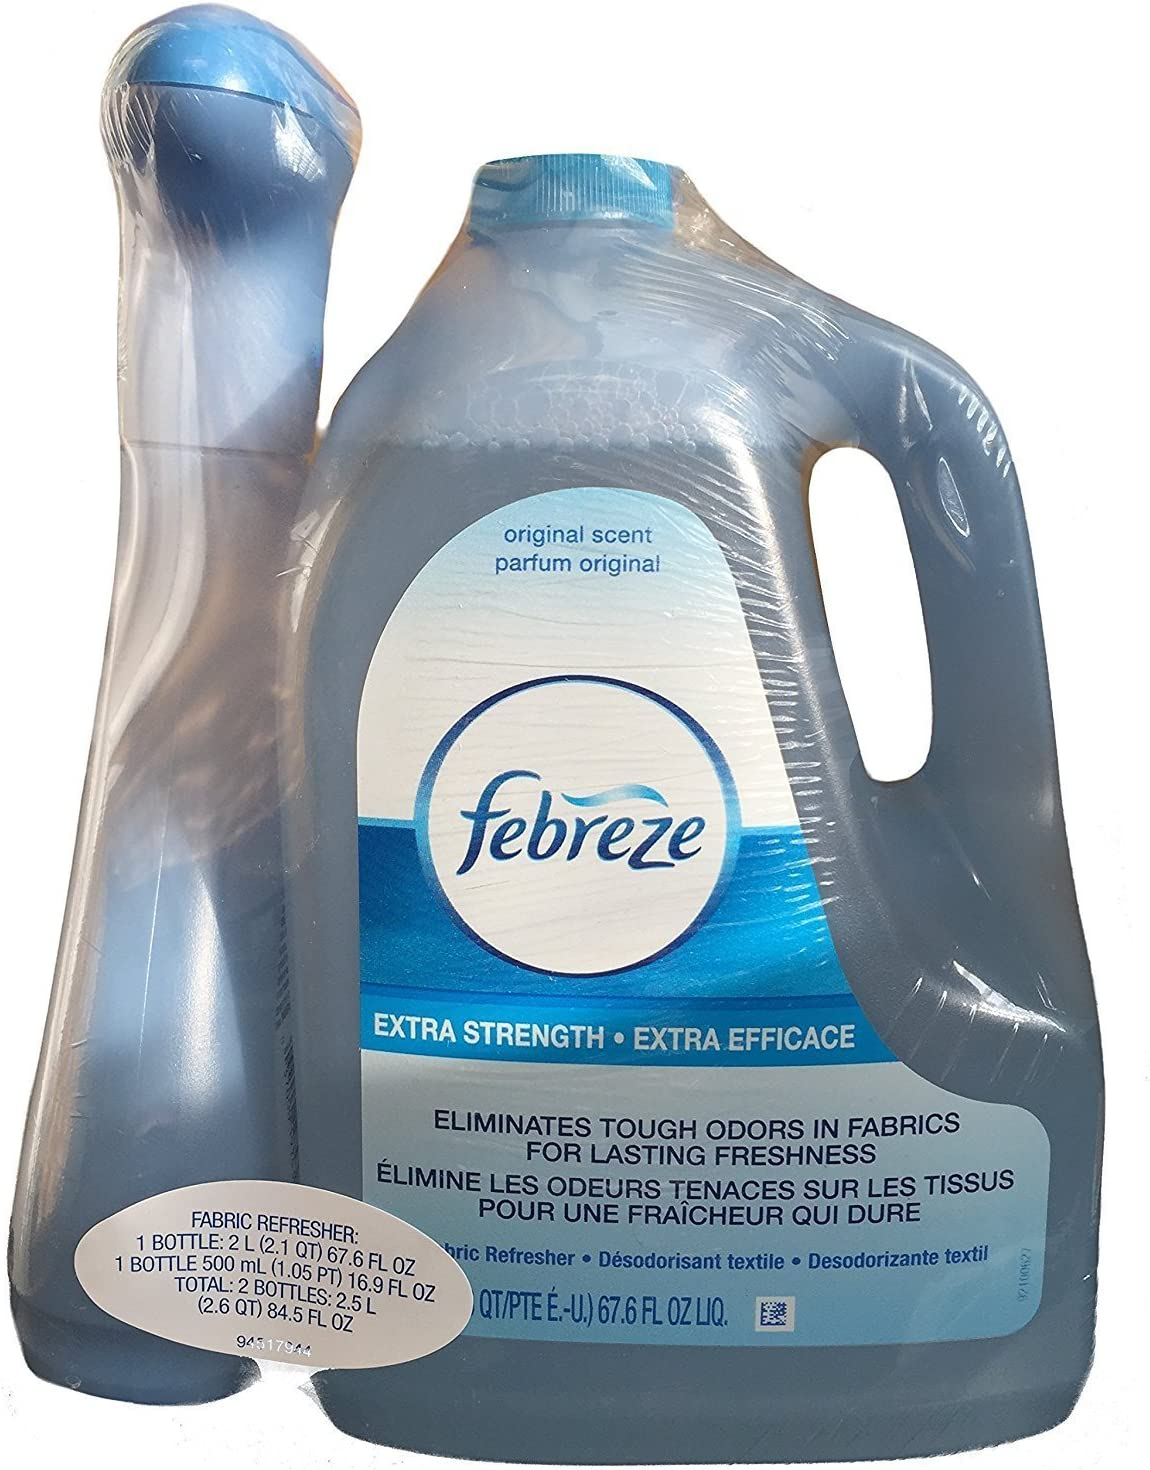 Febreze Extra Strength Fabric Refresher Value Pack 16.9 oz Spray With 67.6 oz Refill Bottle